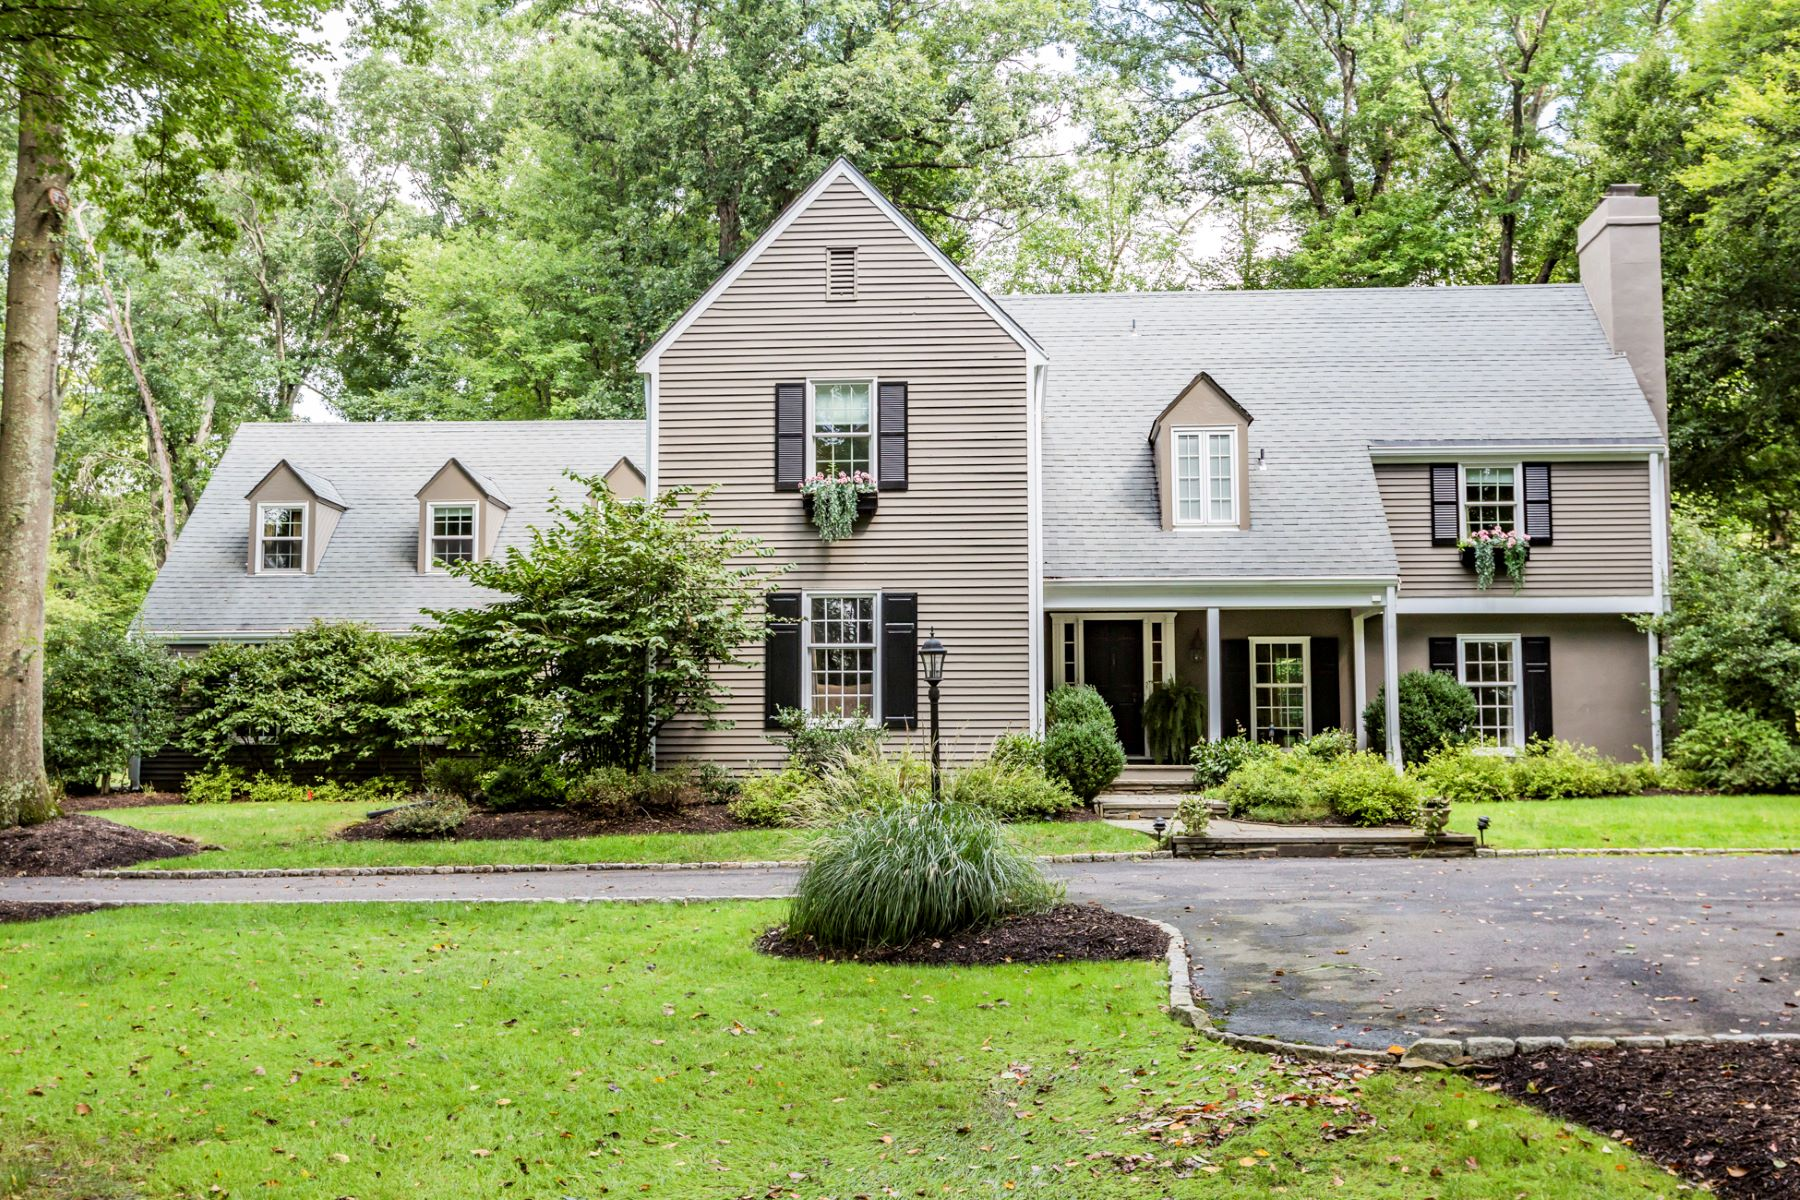 Eensgezinswoning voor Verkoop op Picture Perfect - Brimming with Character 8 East Shore Drive, Princeton, New Jersey 08540 Verenigde StatenIn/Rond: Hopewell Township